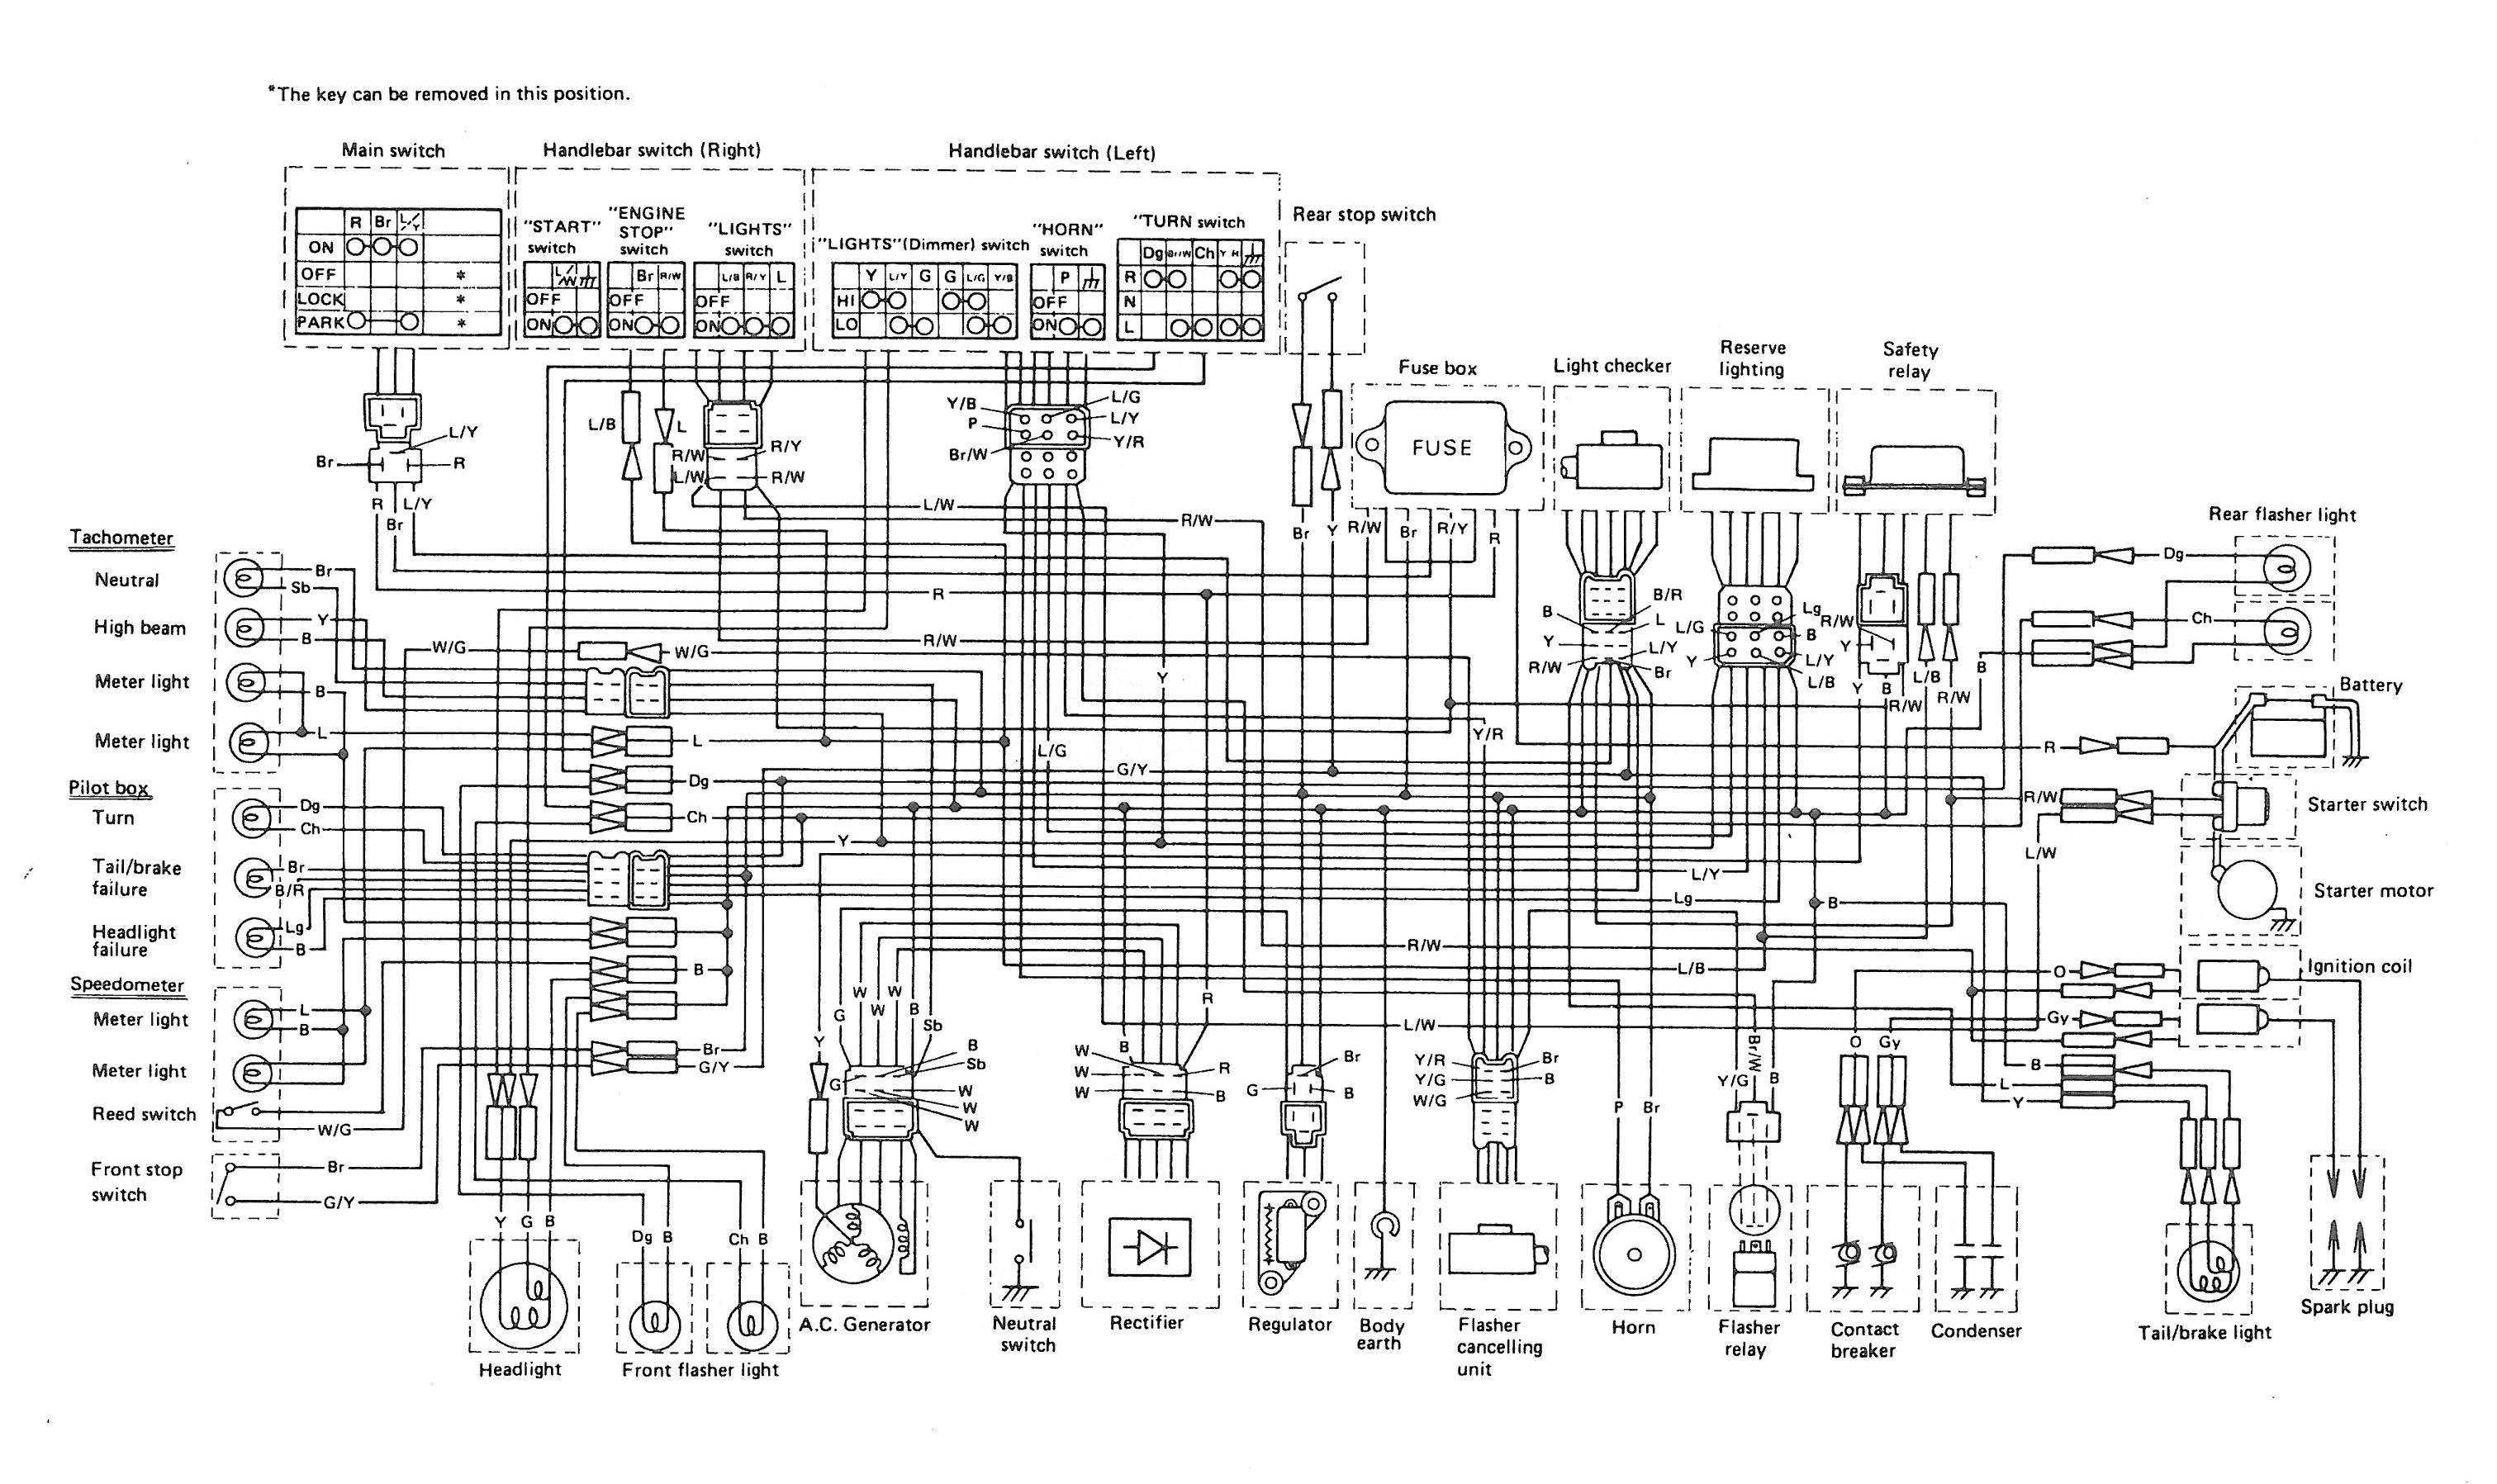 78 xsse wiring 6 1 elec diagram thexscafe 1980 xs650 wiring diagram at readyjetset.co